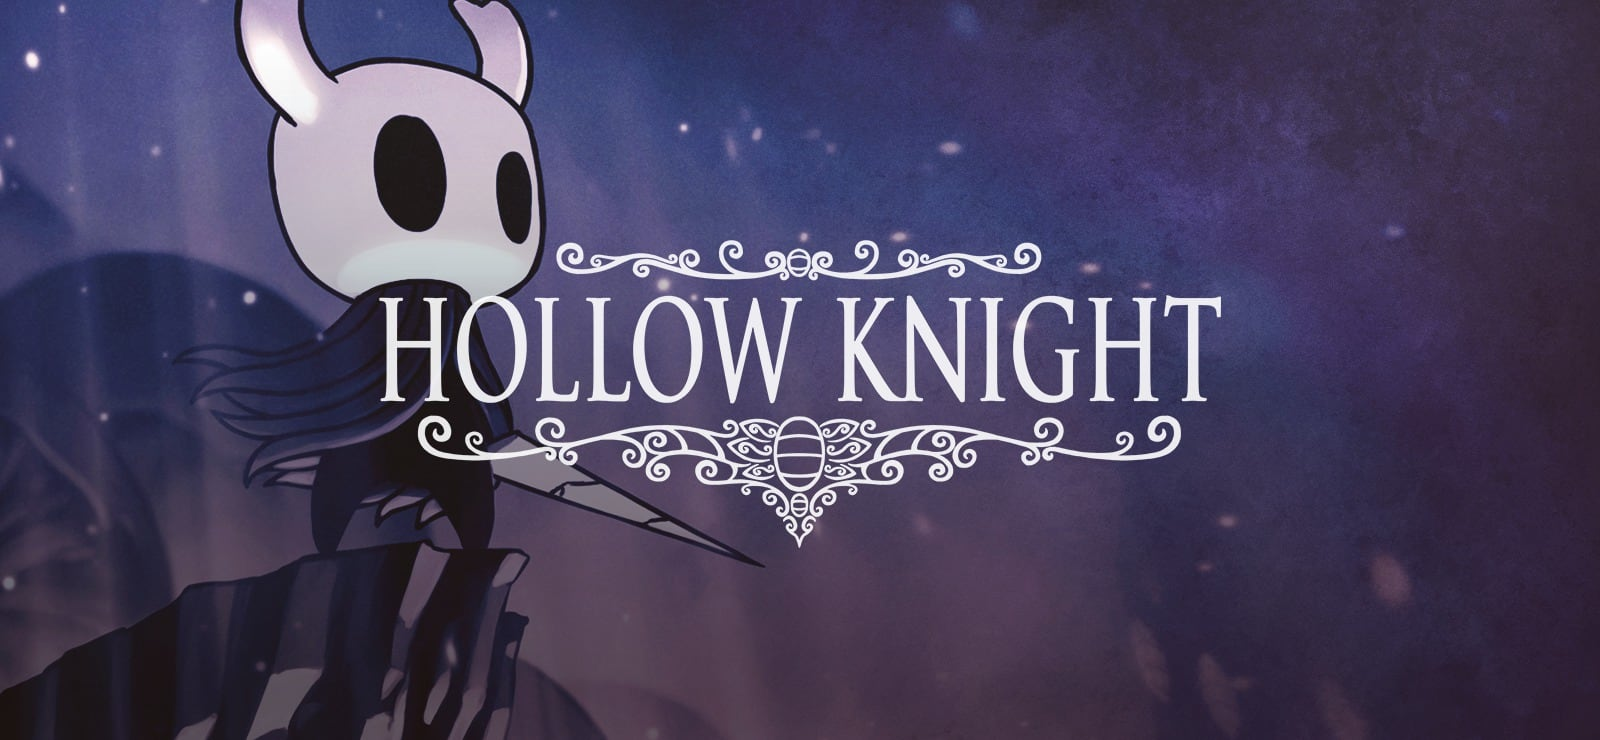 Hollow Knight (PC Digital Download) $9.98 via GOG or Steam